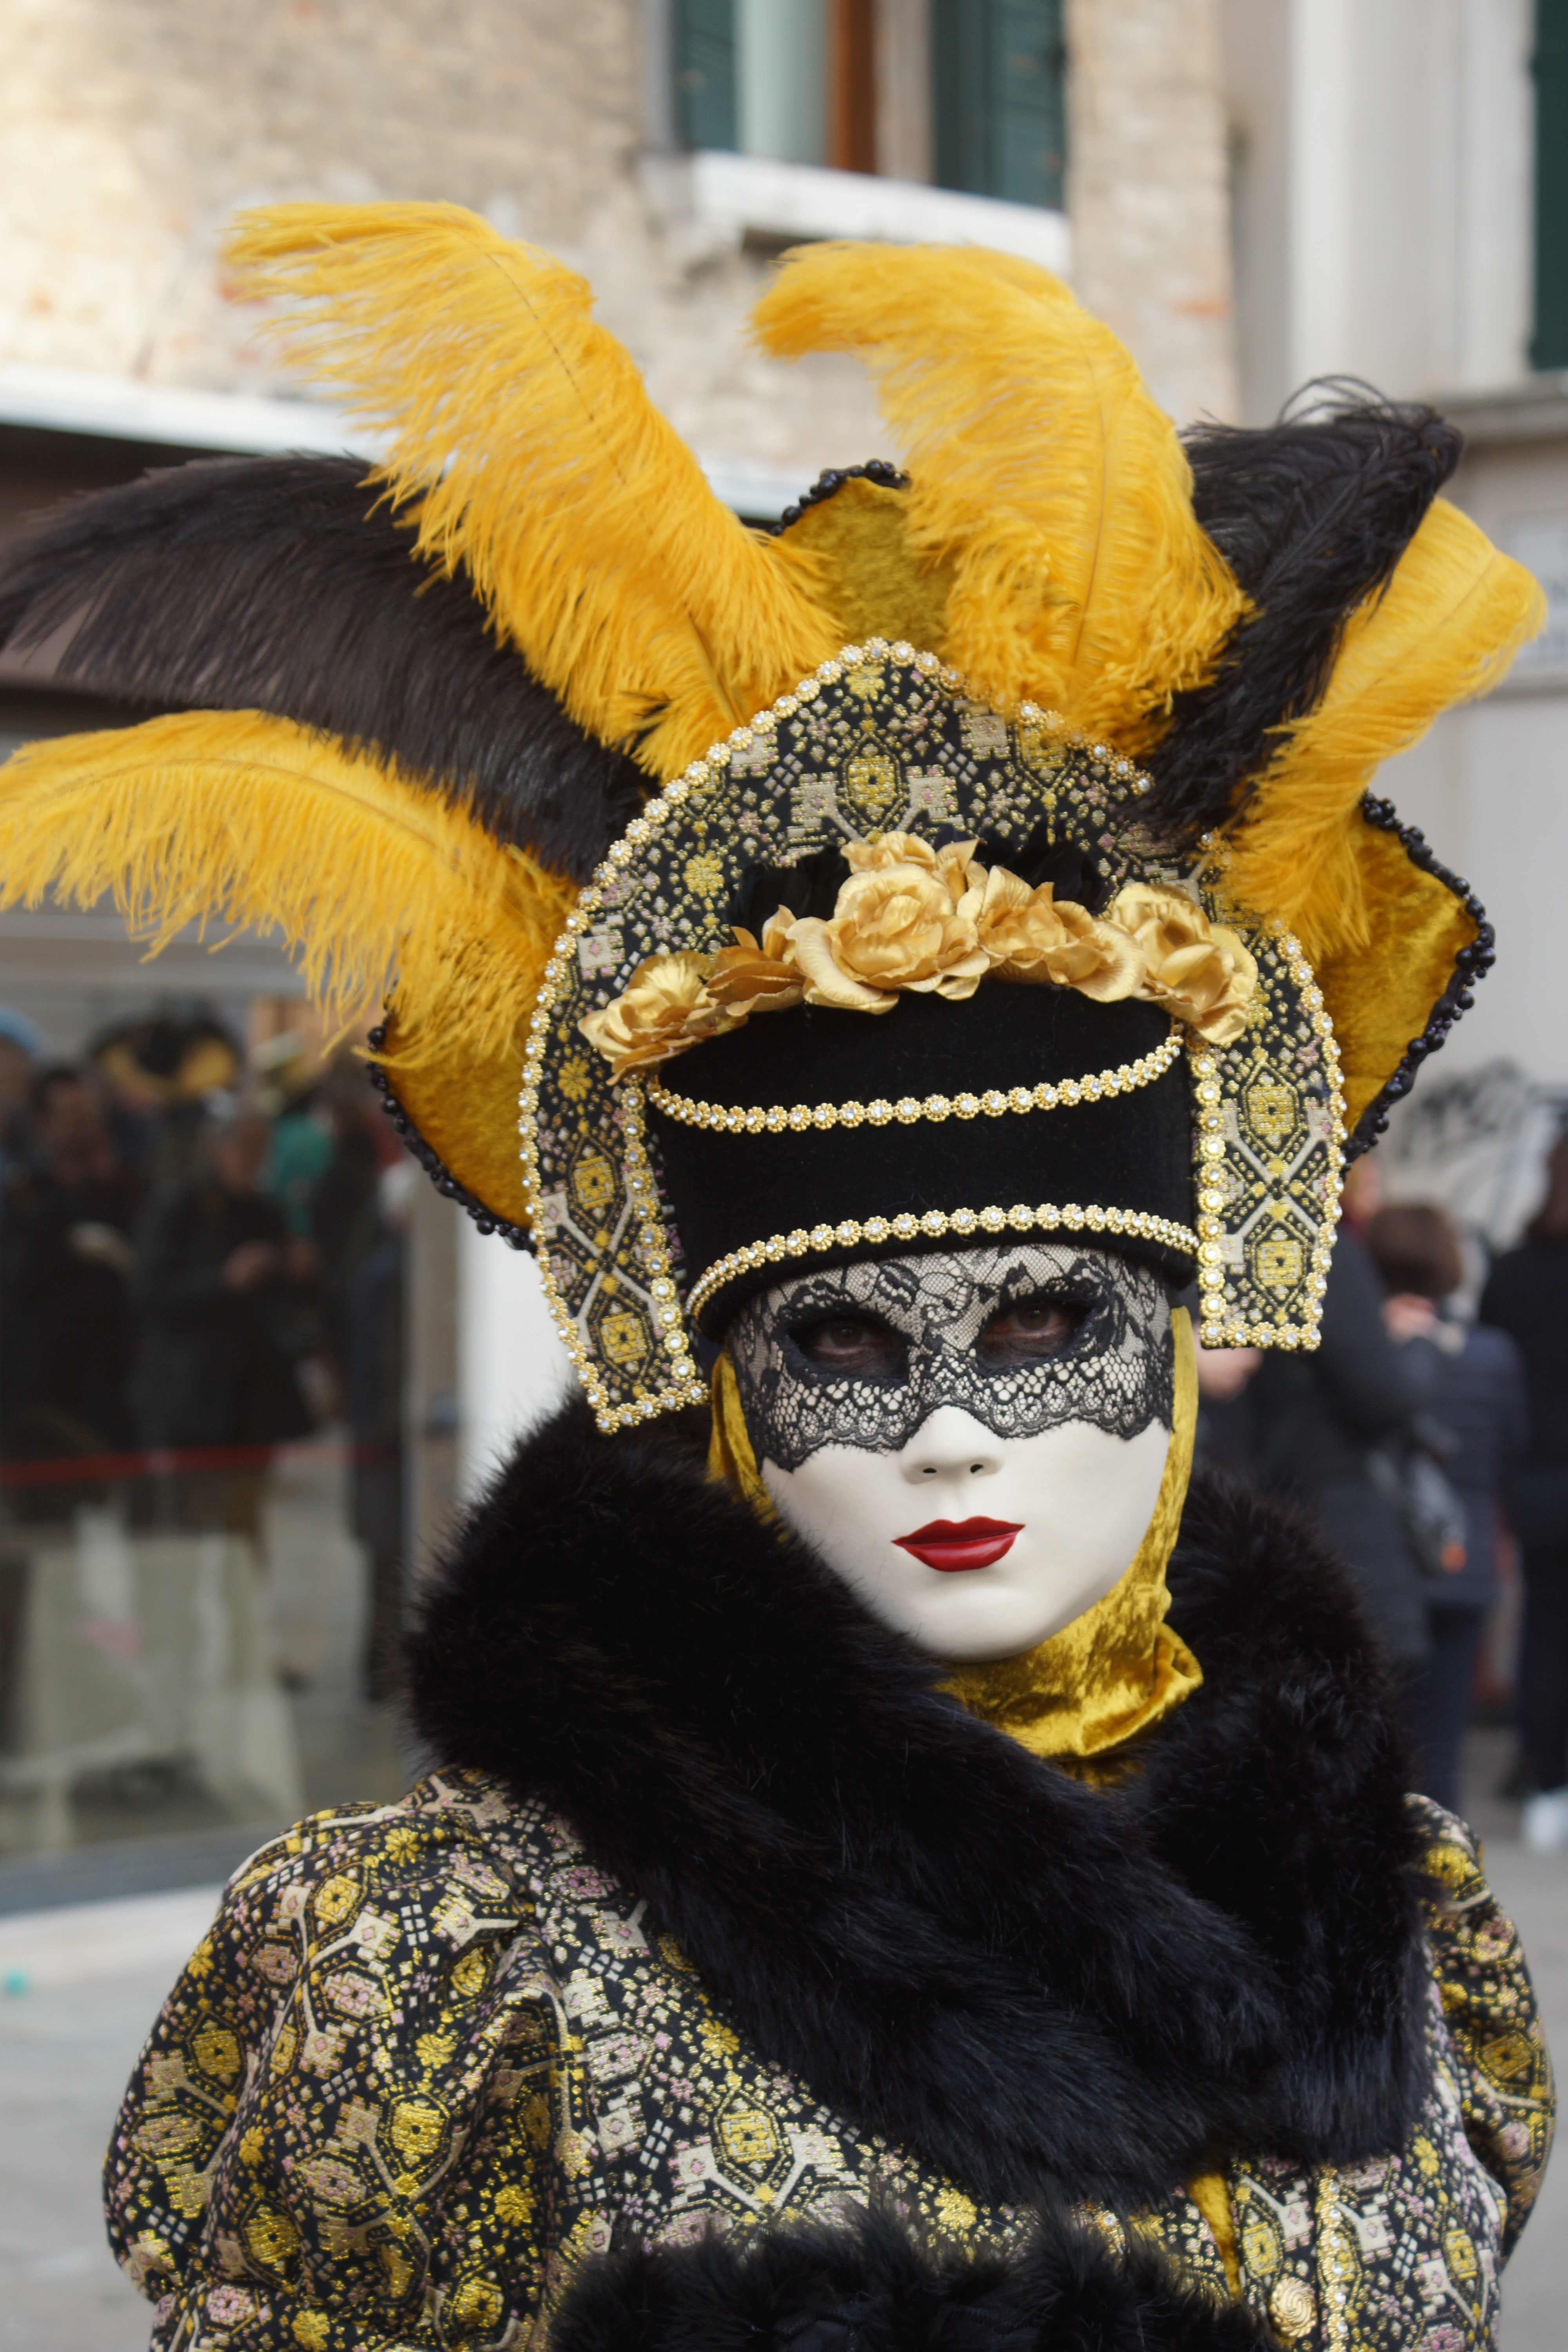 selective focus photography of person wearing masquerade and costume